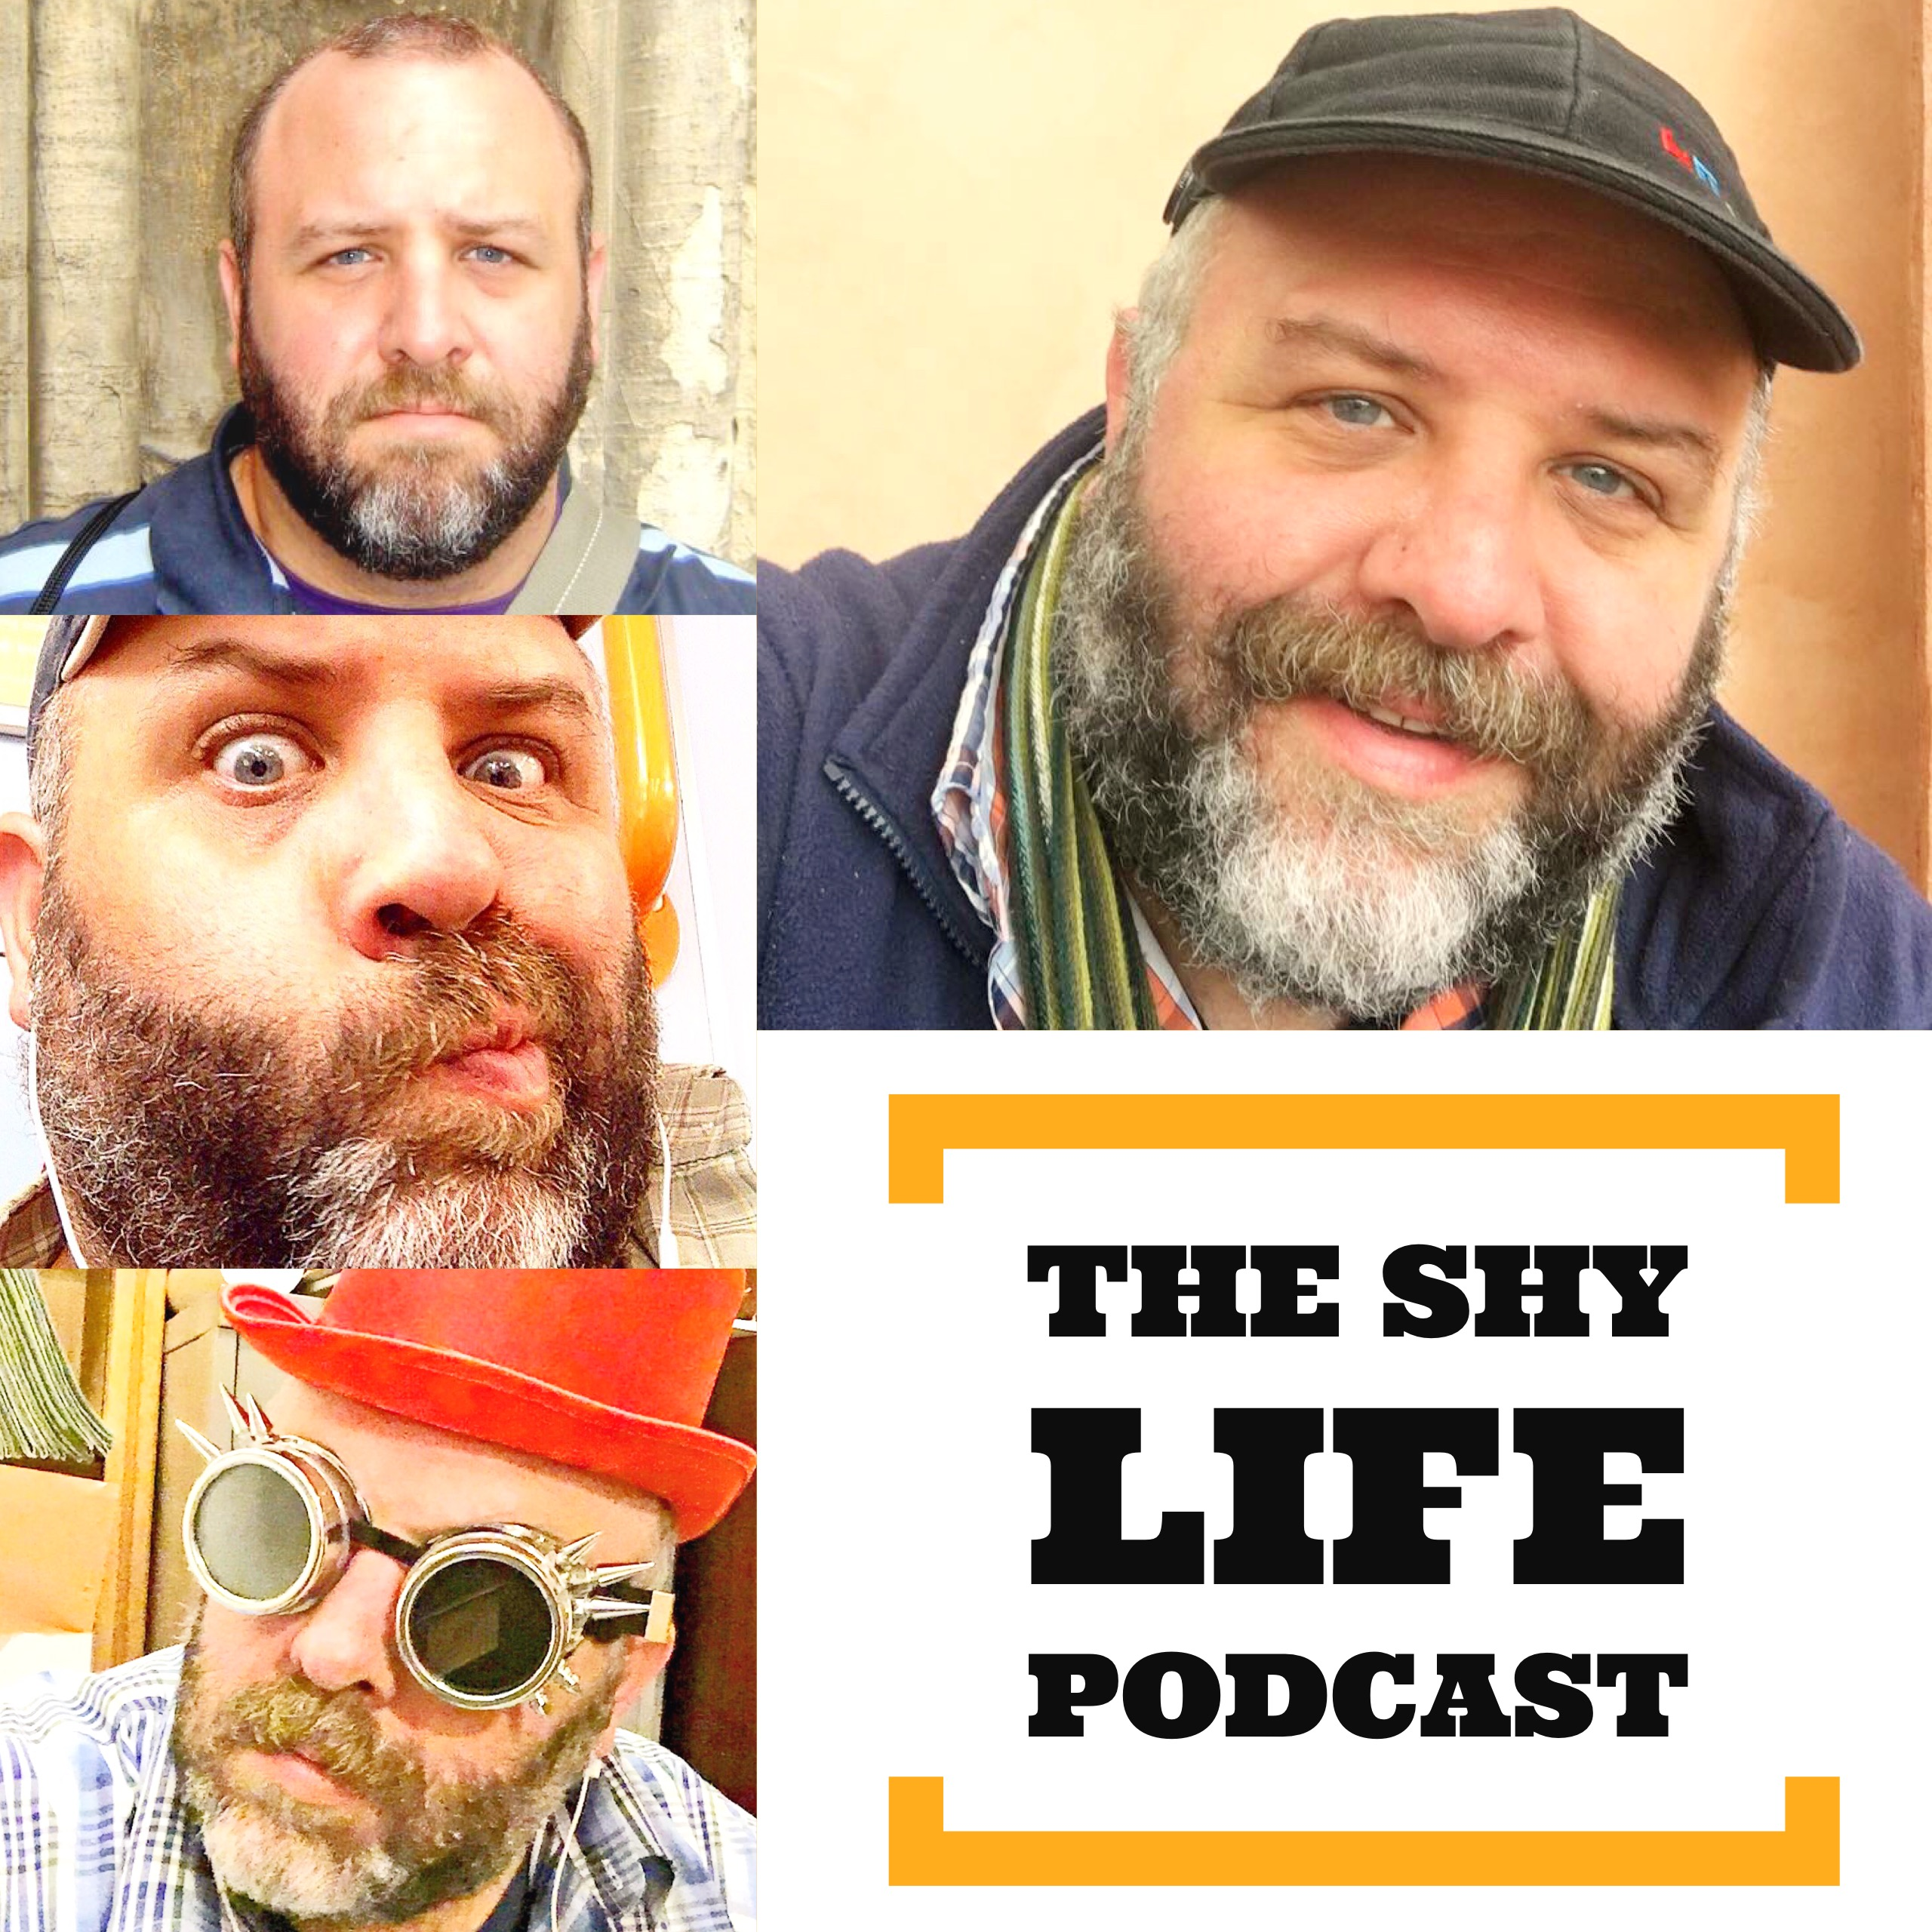 THE SHY LIFE PODCAST show art